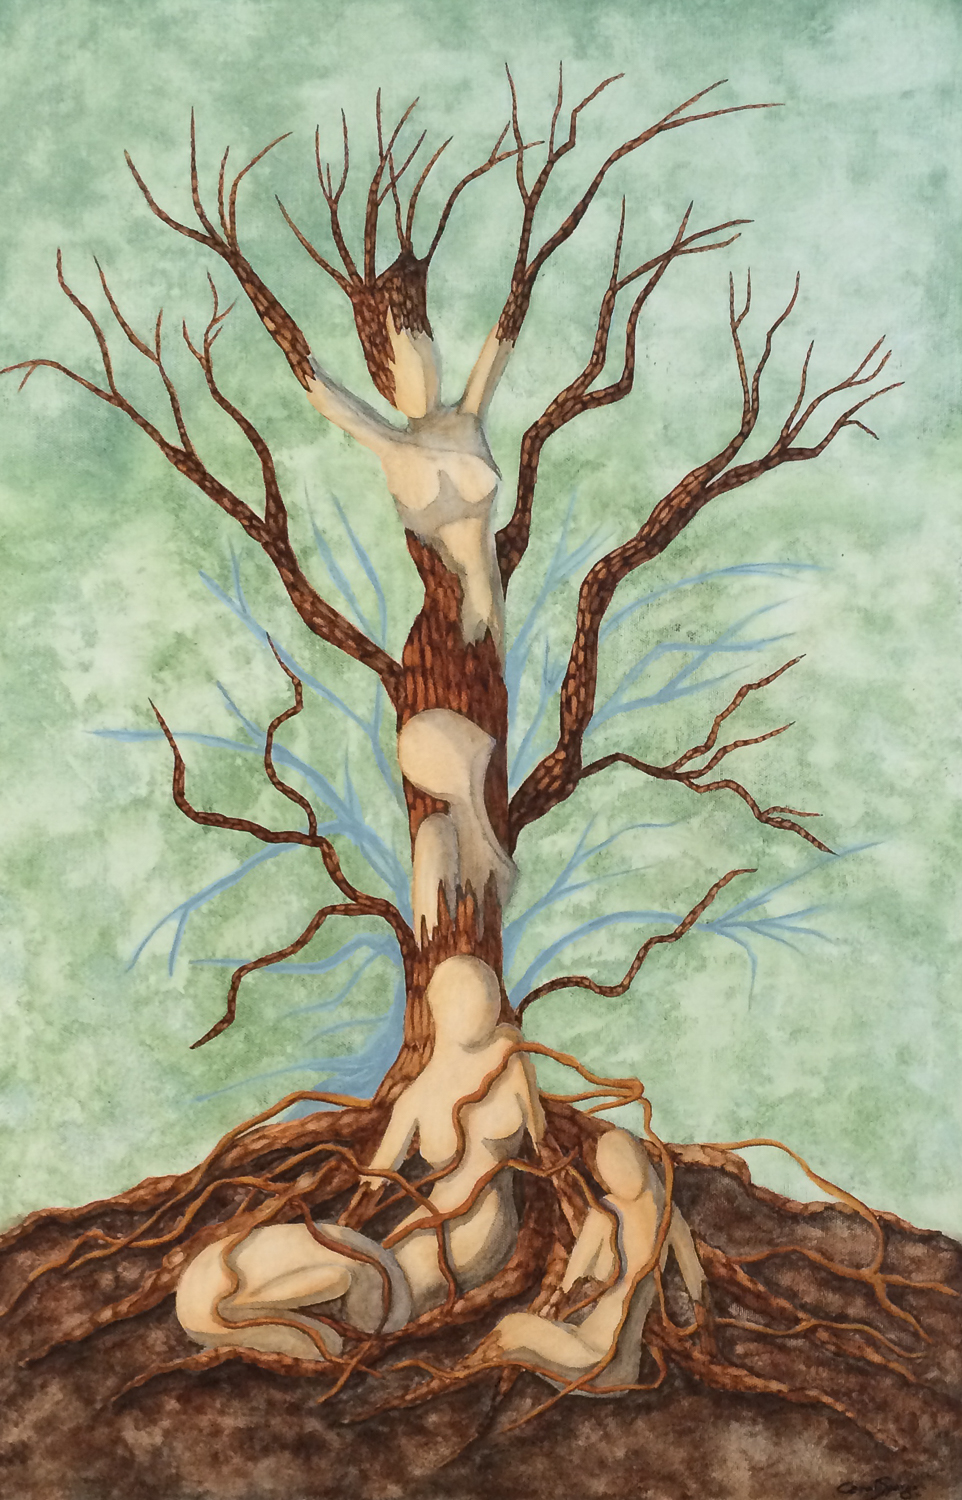 Painting of human bodies growing into a tree, looking proud at the top canopy